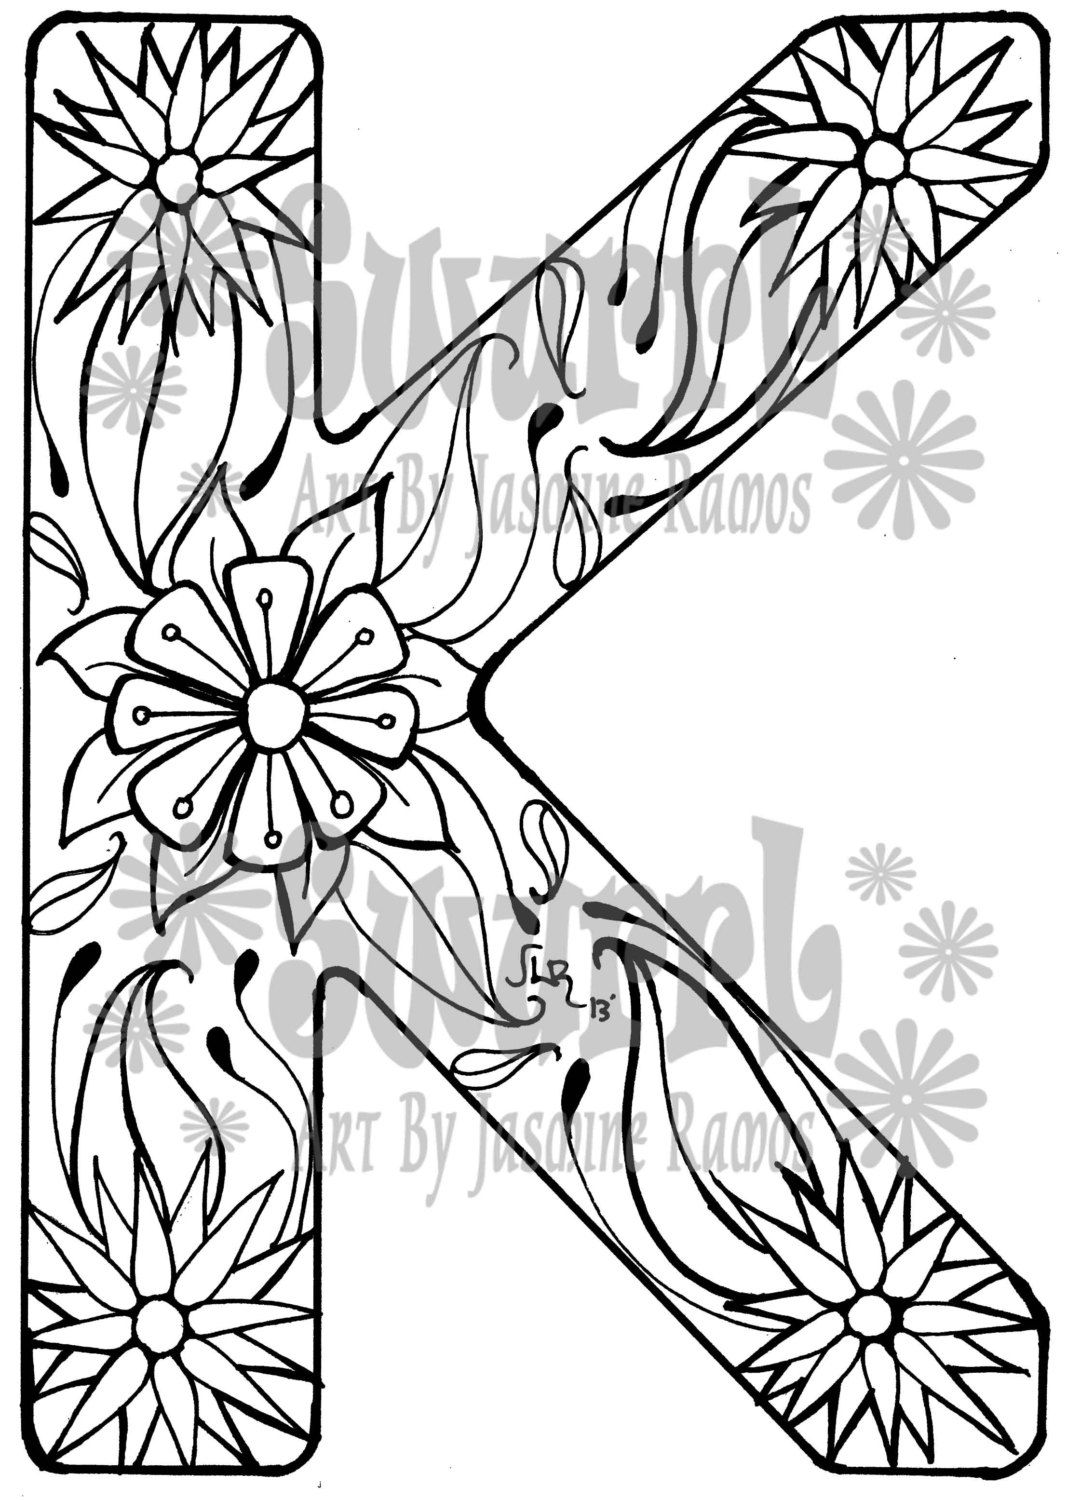 Letter K Coloring Pages Adult Coloring pages, Alphabet